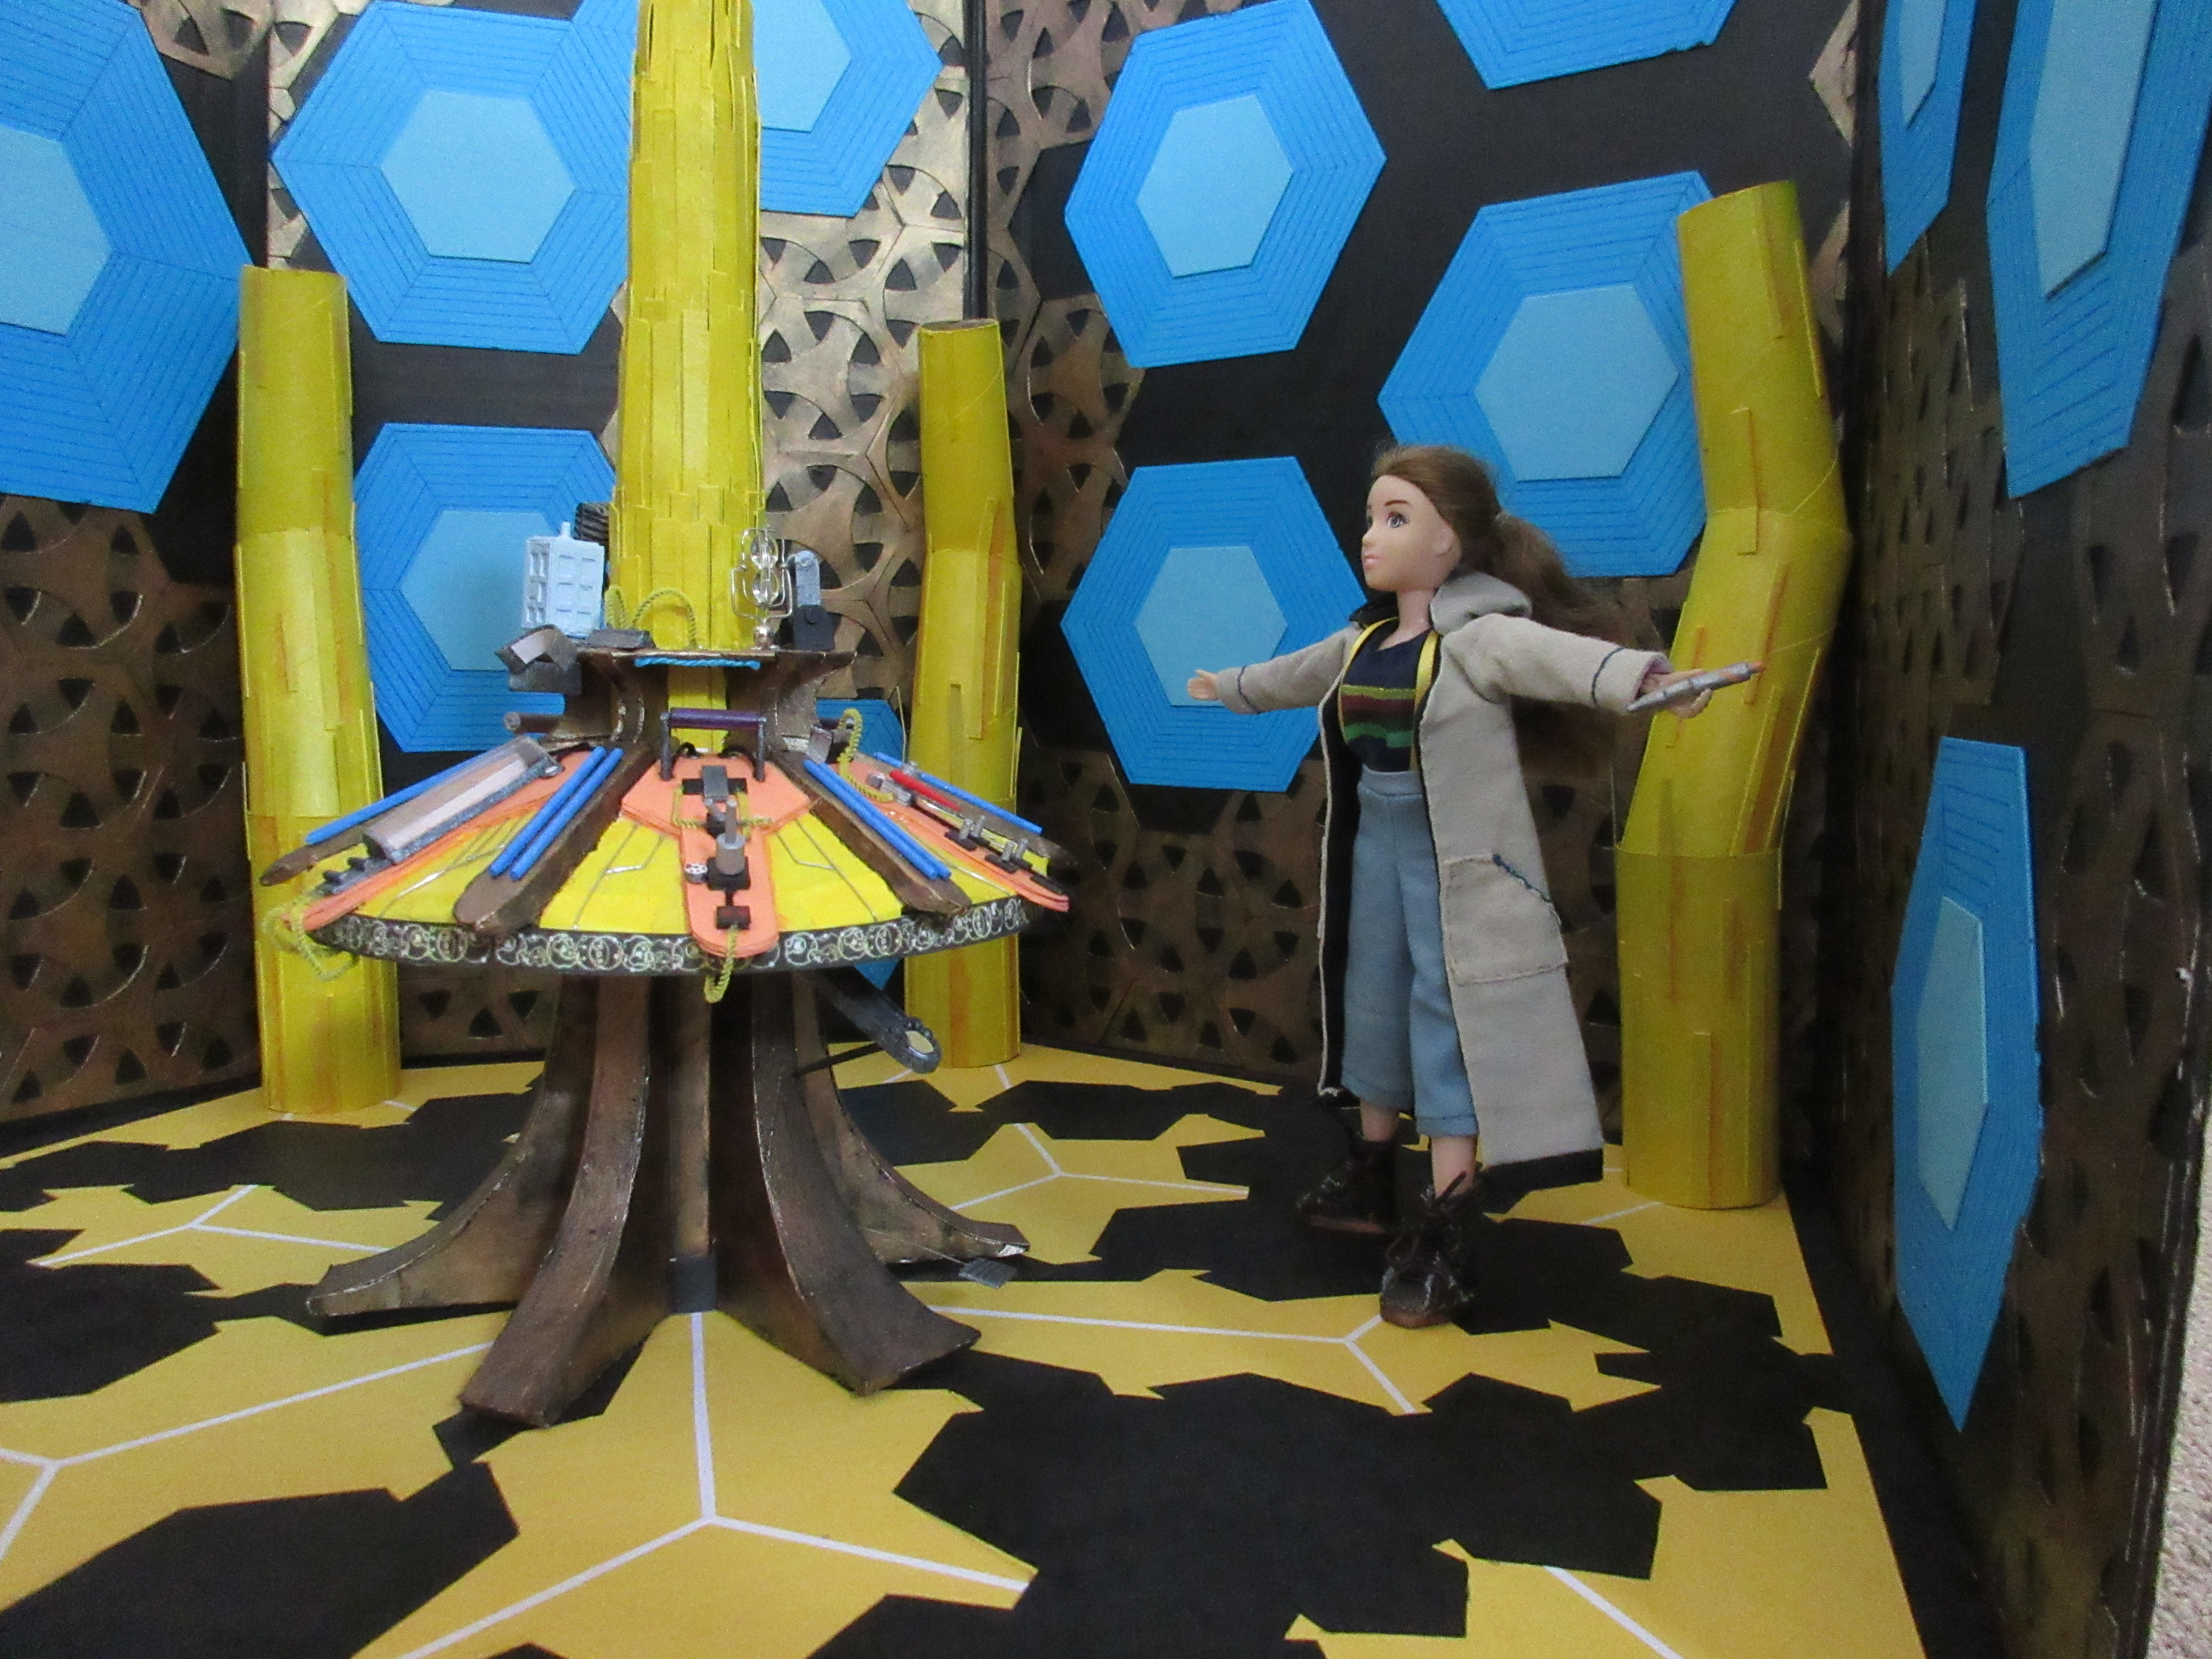 Sarah is in the TARDIS interior set in Thirteenth Doctor cosplay, holding the sonic screwdriver. She stands a distance away from the camera, arms flung wide. She is looking up at nothing in particular.